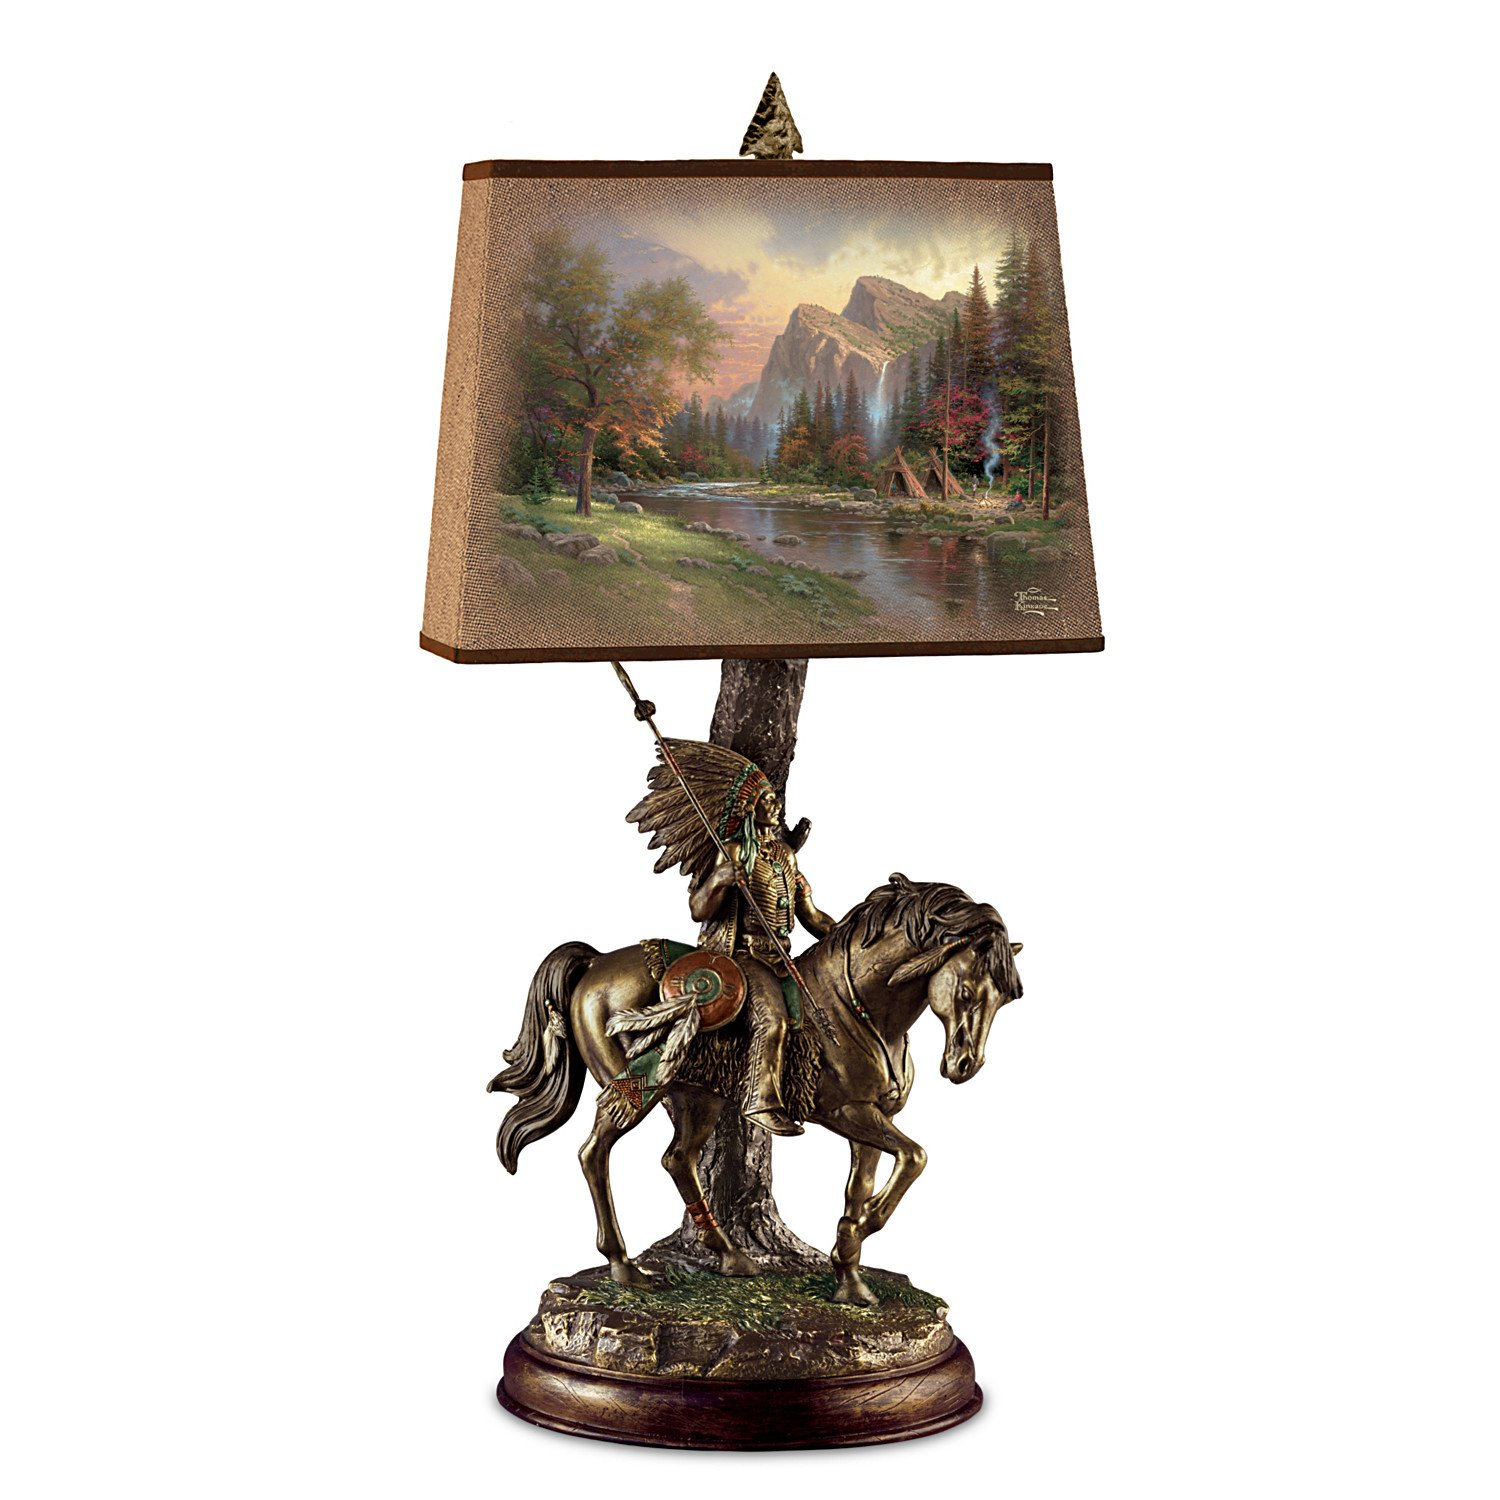 Thomas Kinkade Native Journeys Sculpture Lamp With Art Shade by ...